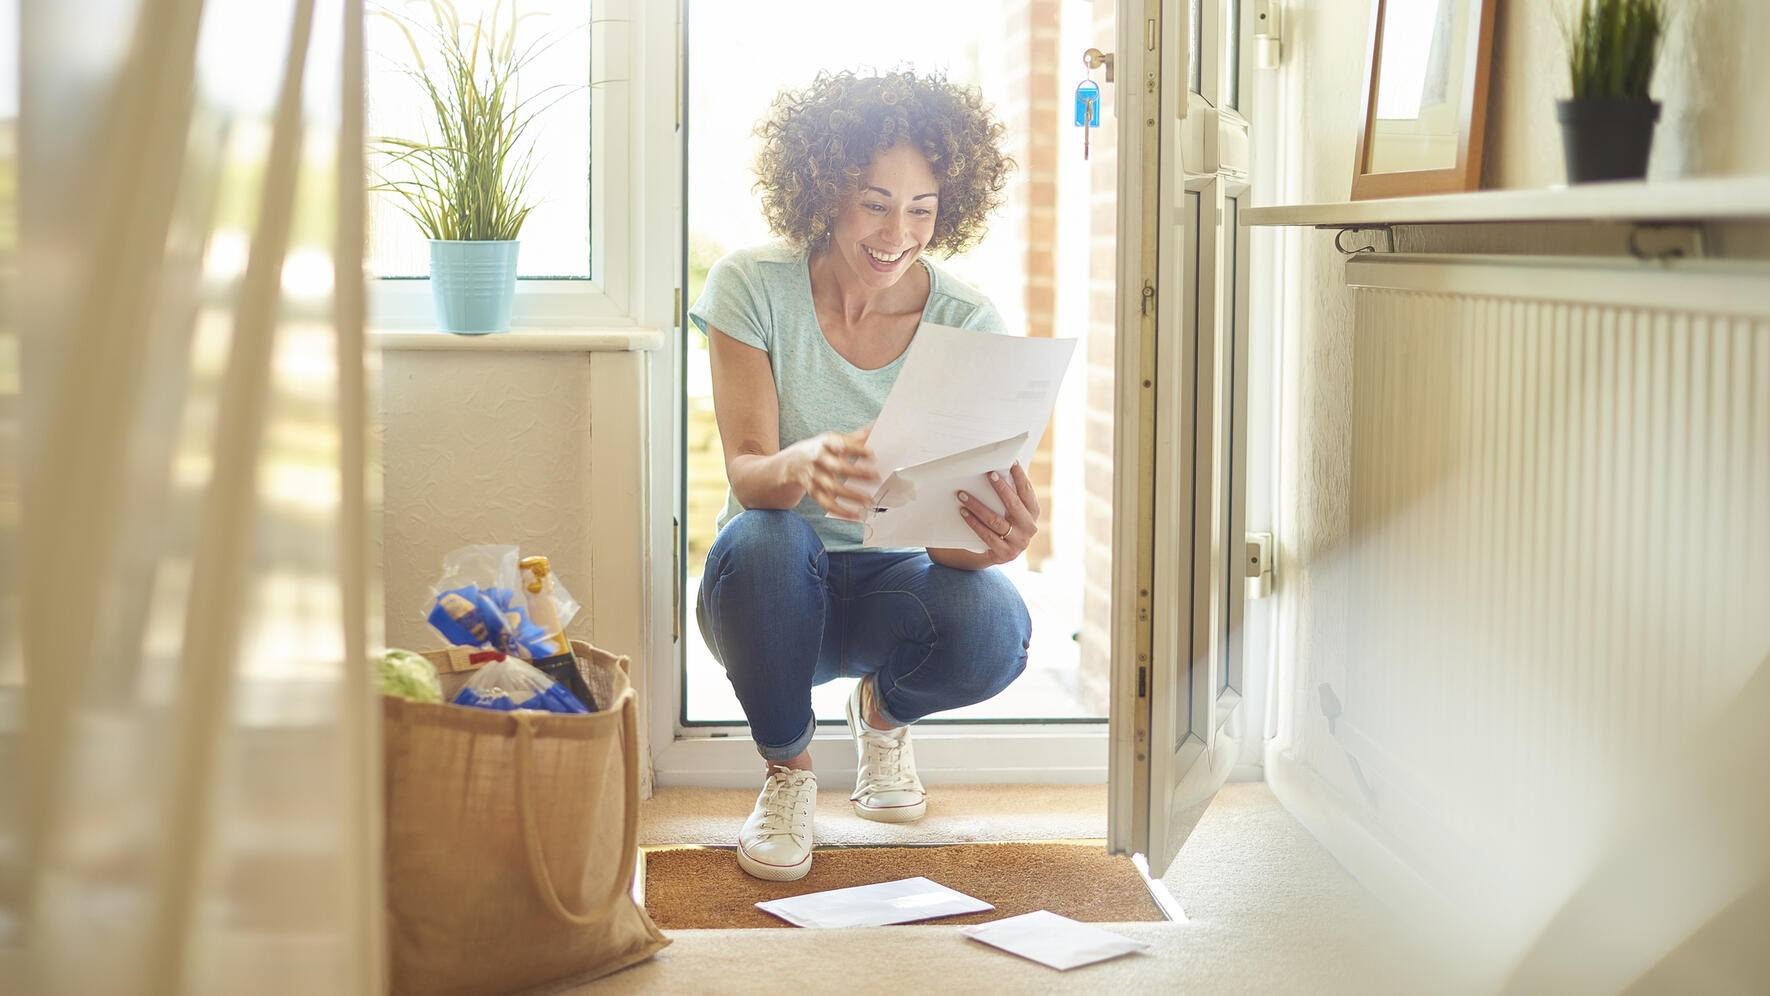 a woman returns home from the shops and finds some letters on the mat . She bends down to open them and smiles at what she is reading